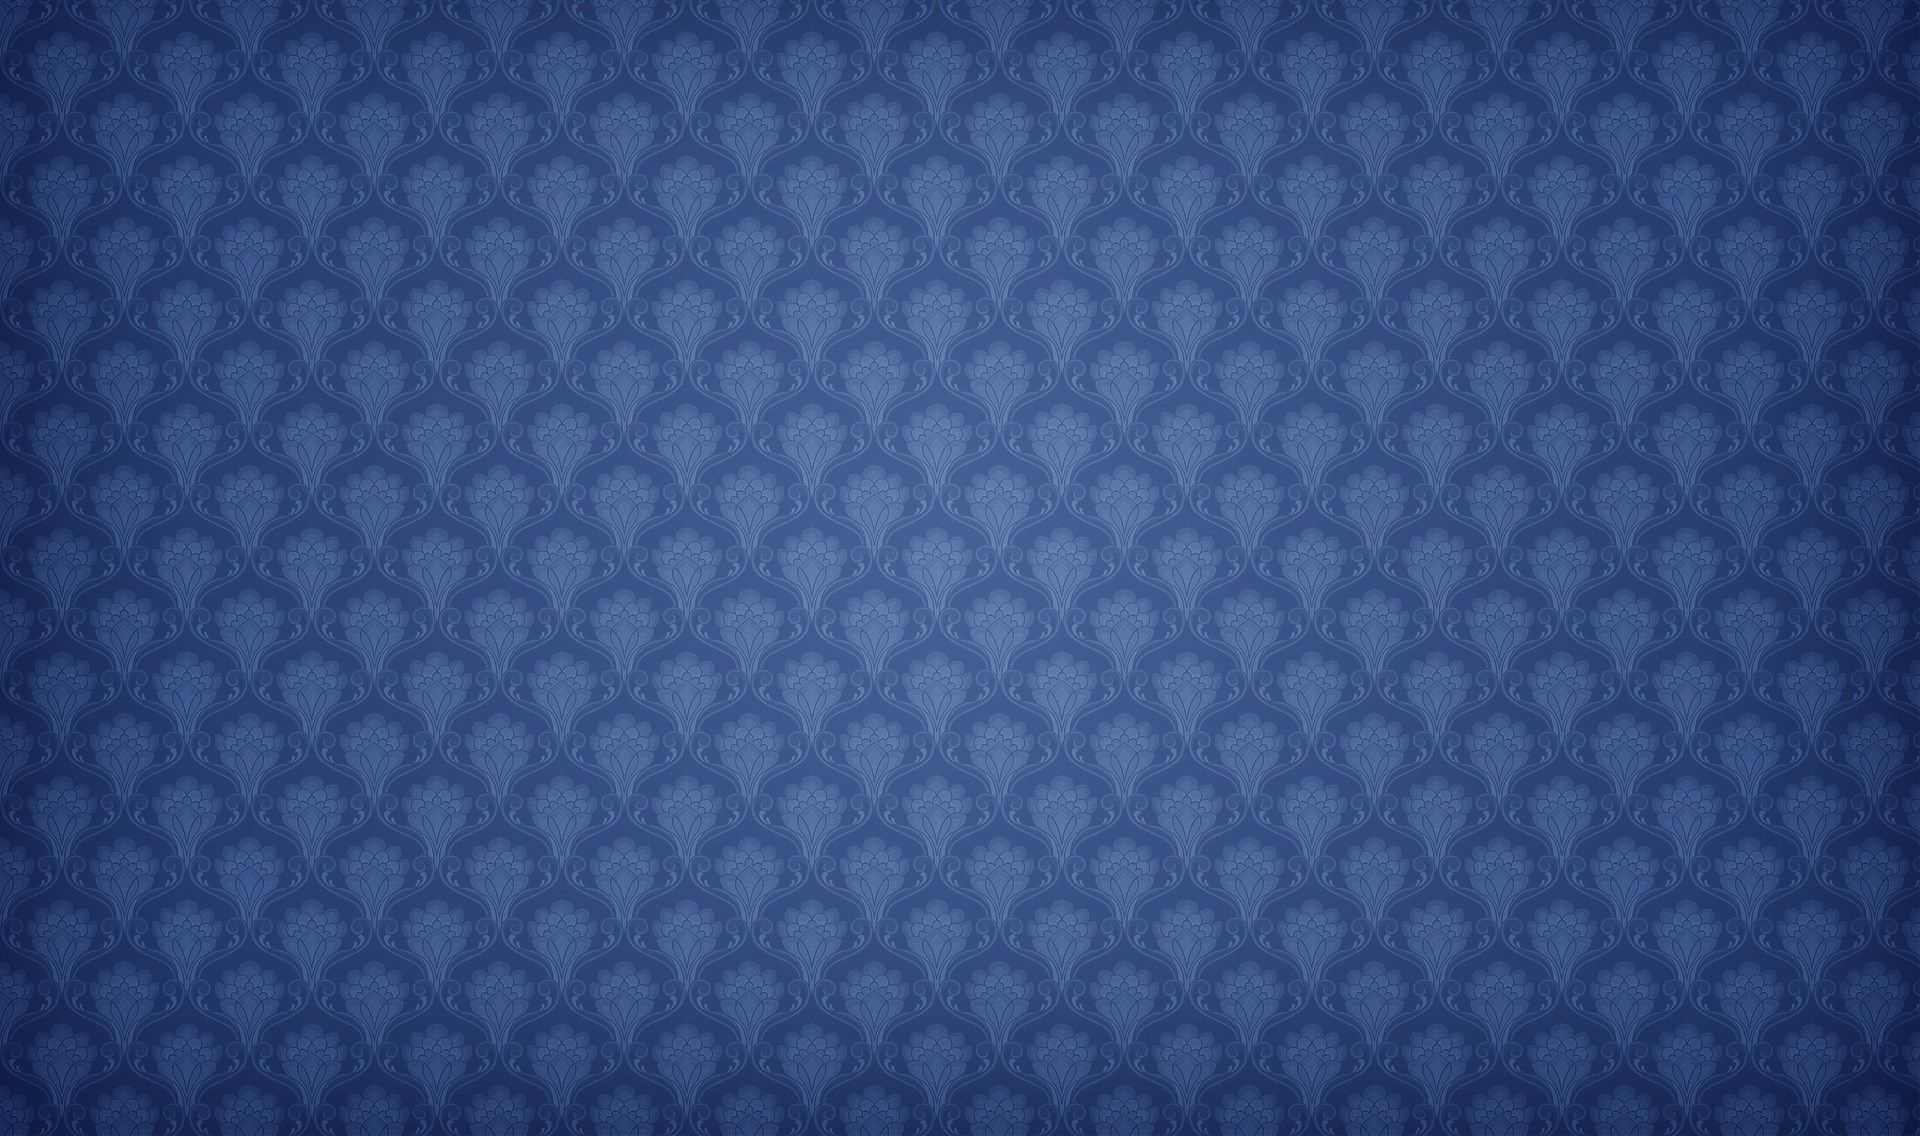 blue floral wall pattern hd abstract wallpaper